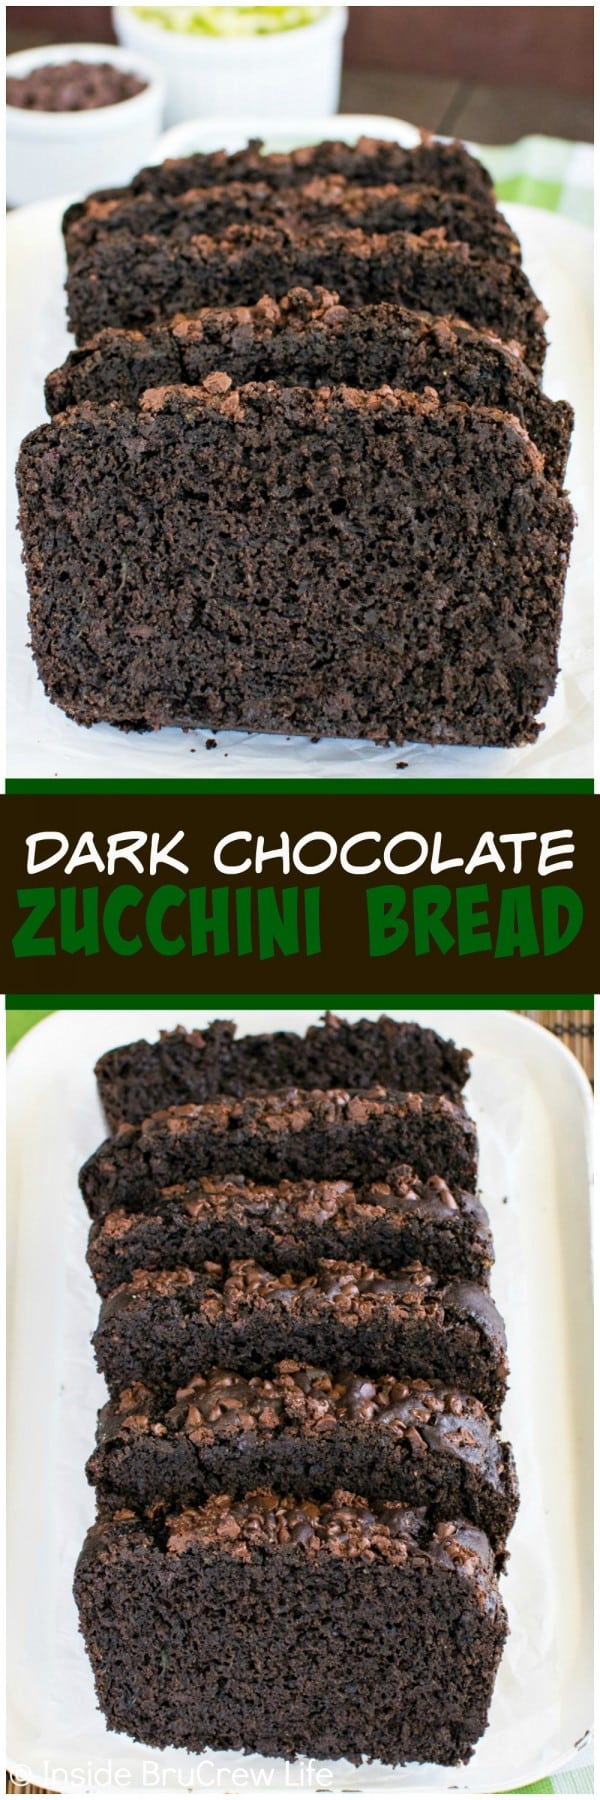 Two pictures of dark chocolate zucchini bread collaged together with a dark brown text box